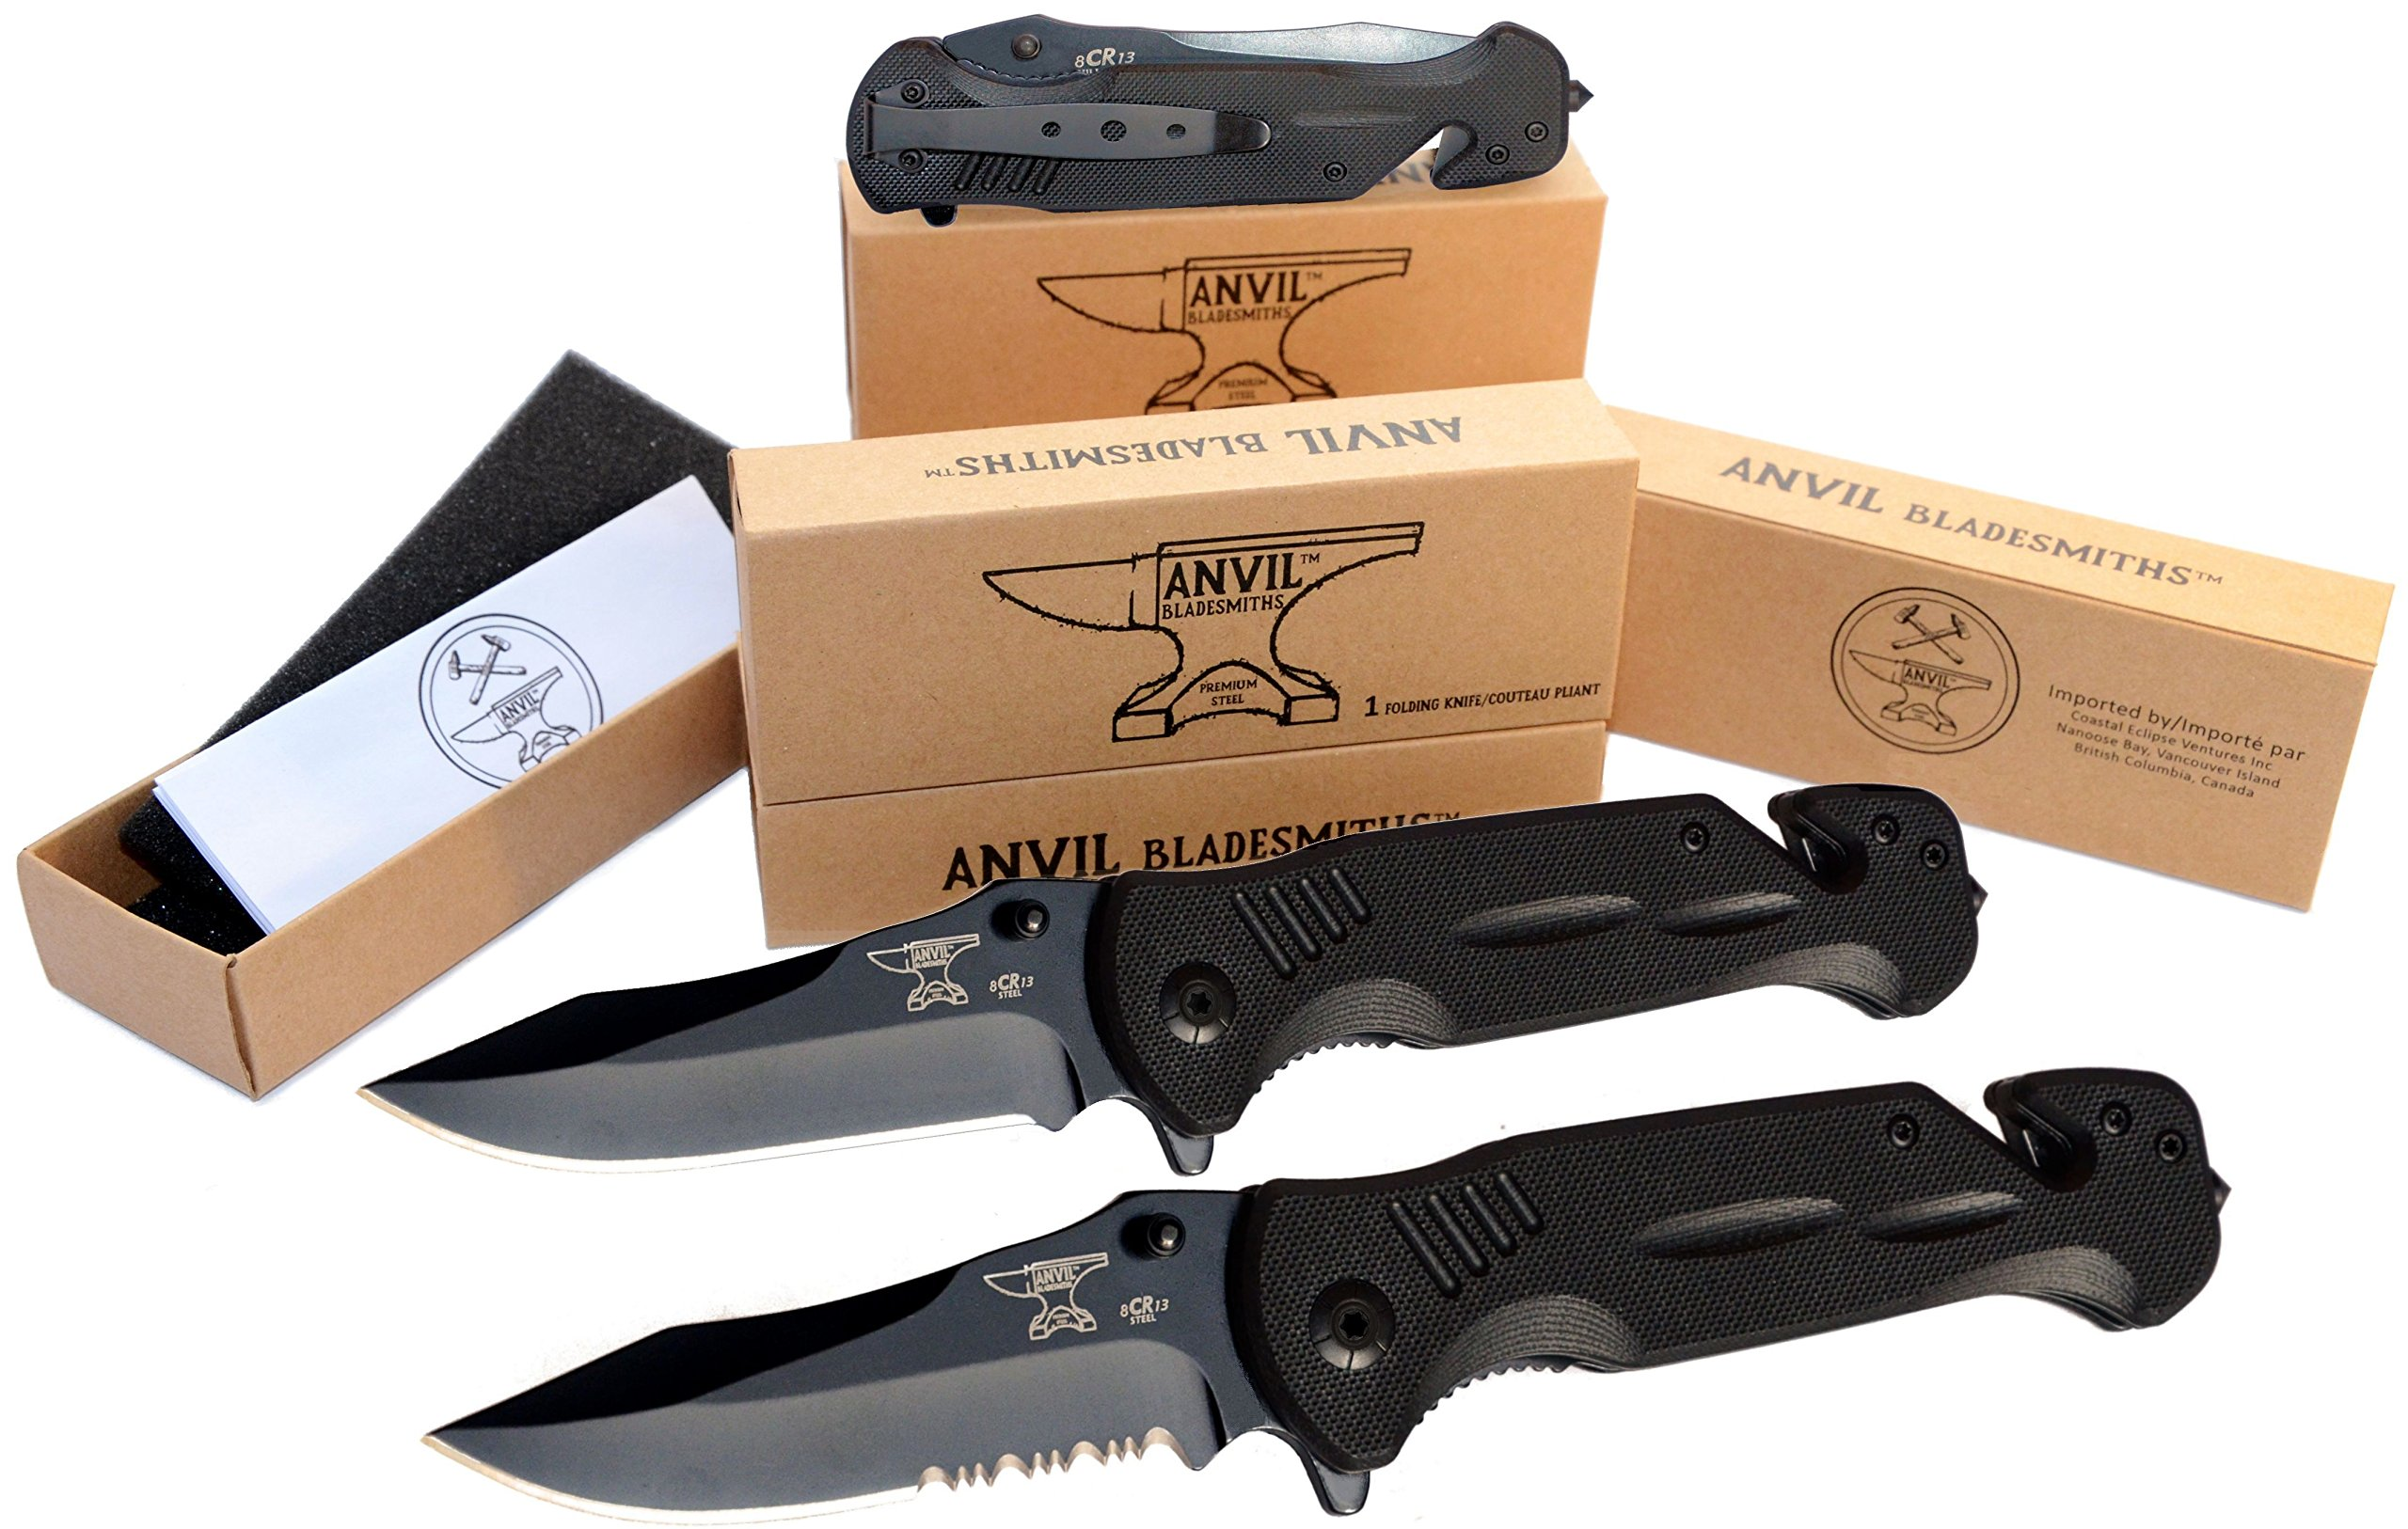 ANVIL BLADESMITHS - BULLSHARK 8CR13 - Folding Pocket Knife - Serrated Blade Black - Assisted Open by ANVIL BLADESMITHS (Image #5)